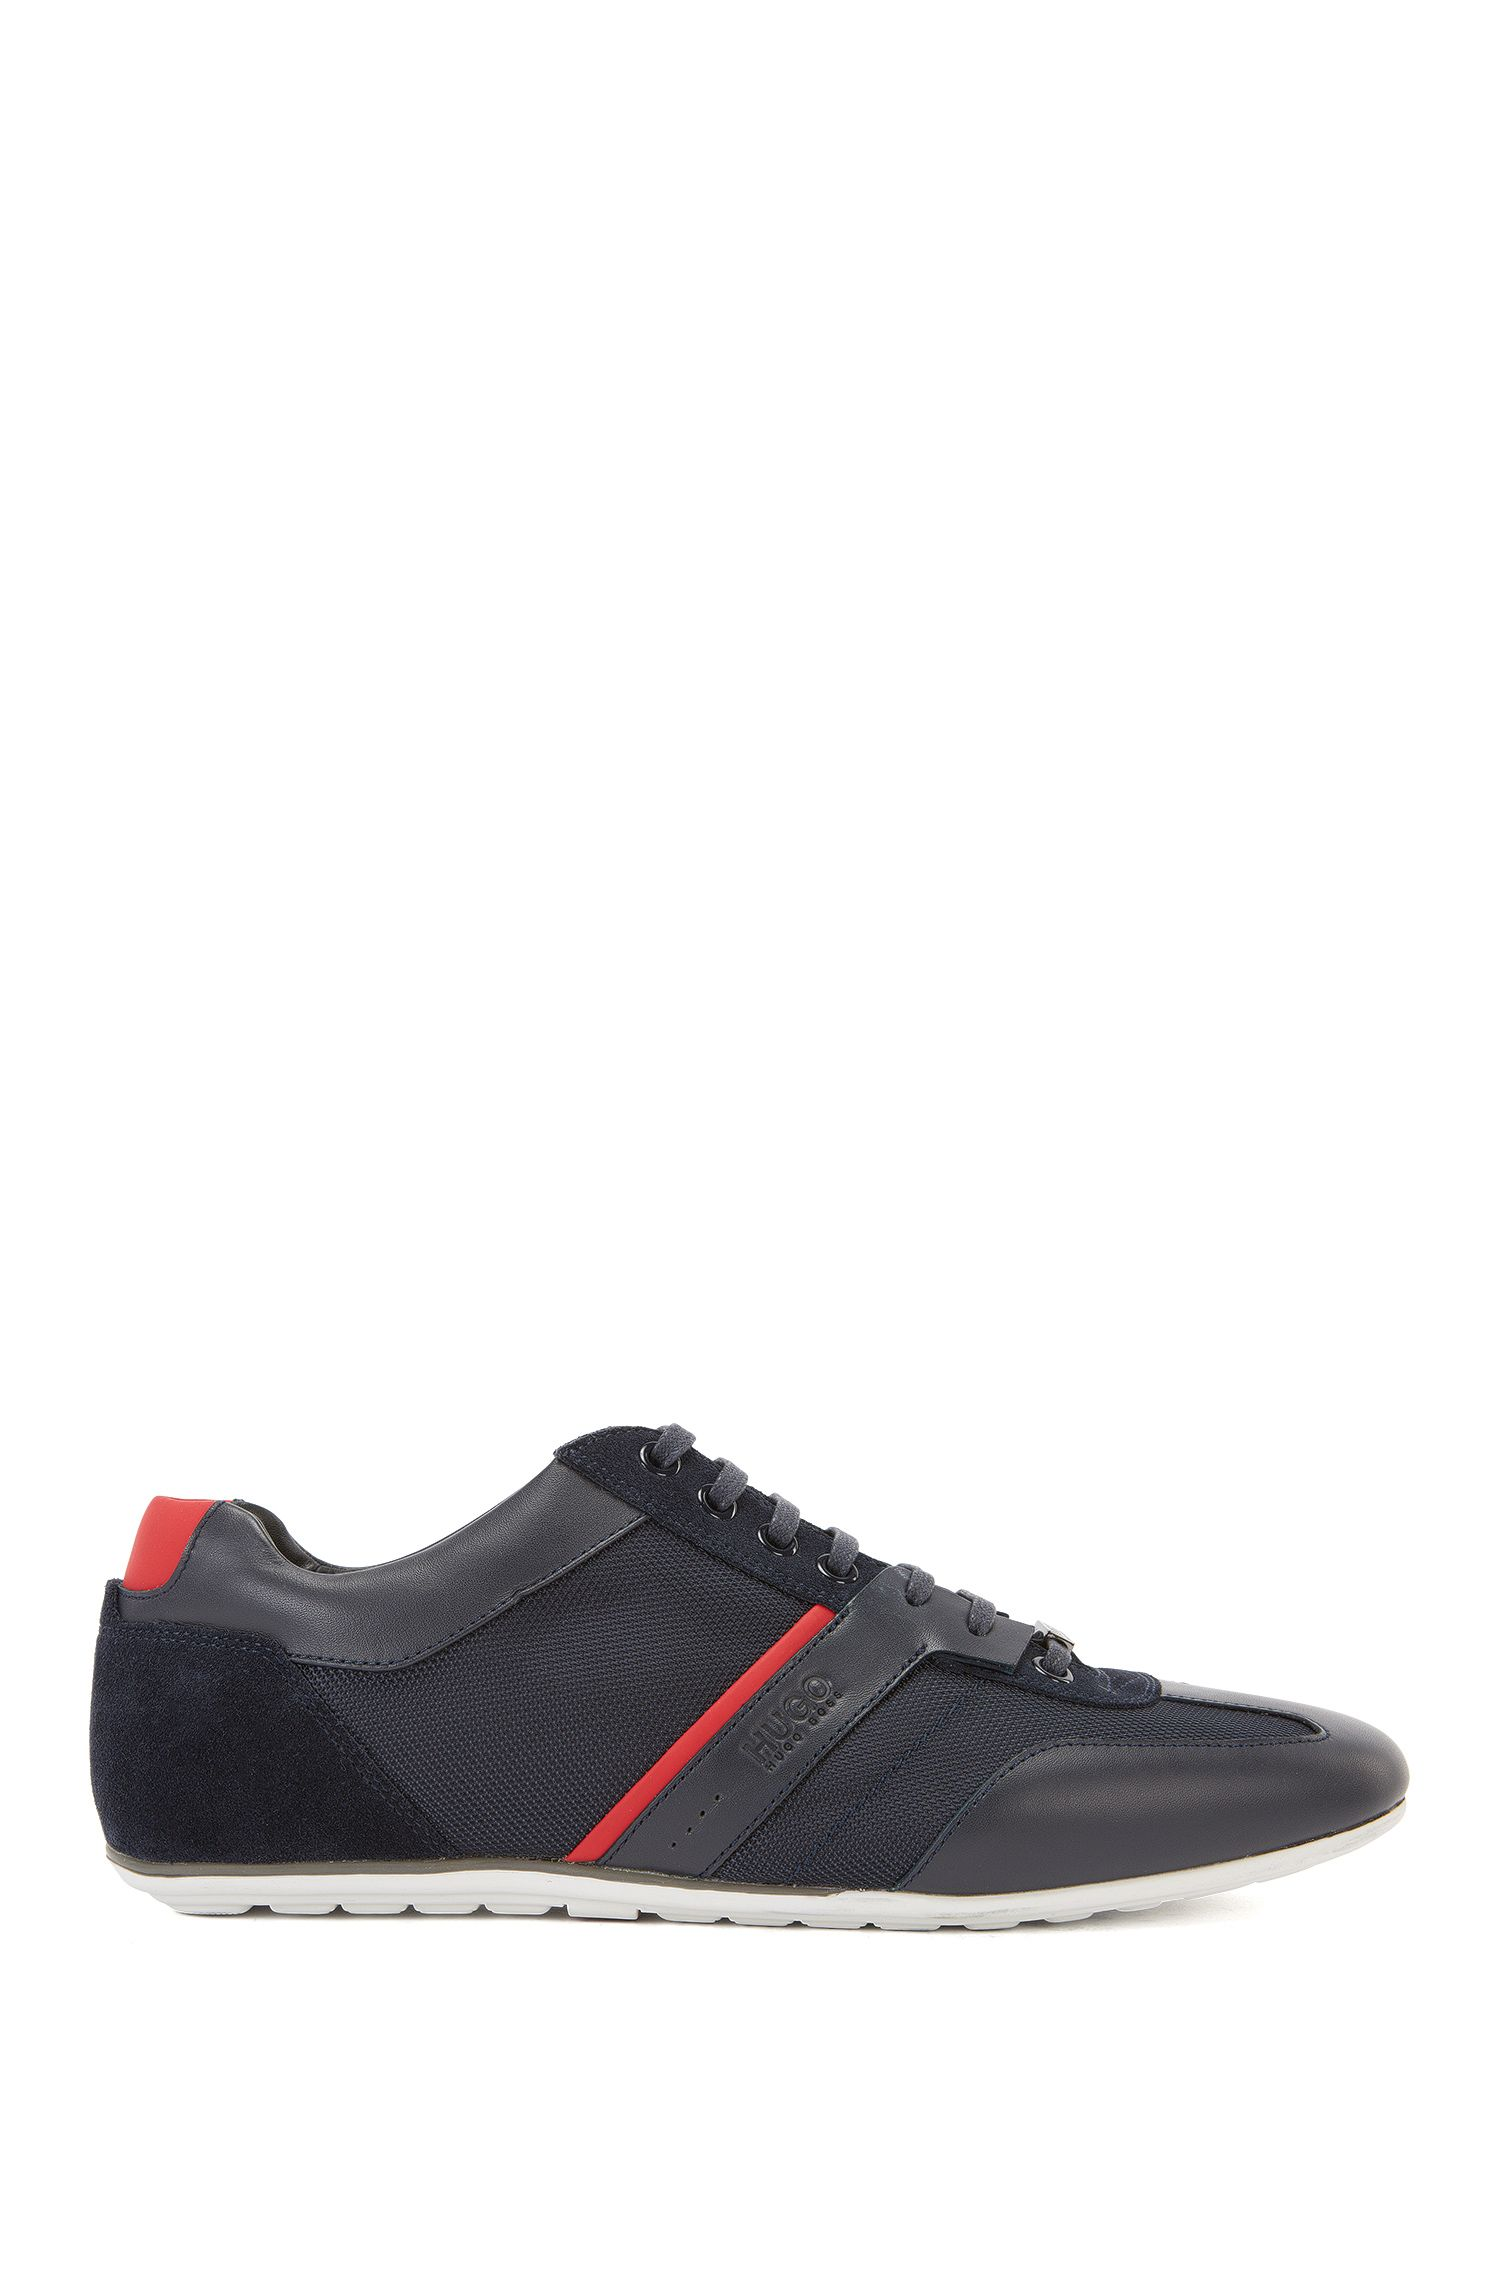 Sneakers low-top con rivestimenti in pelle